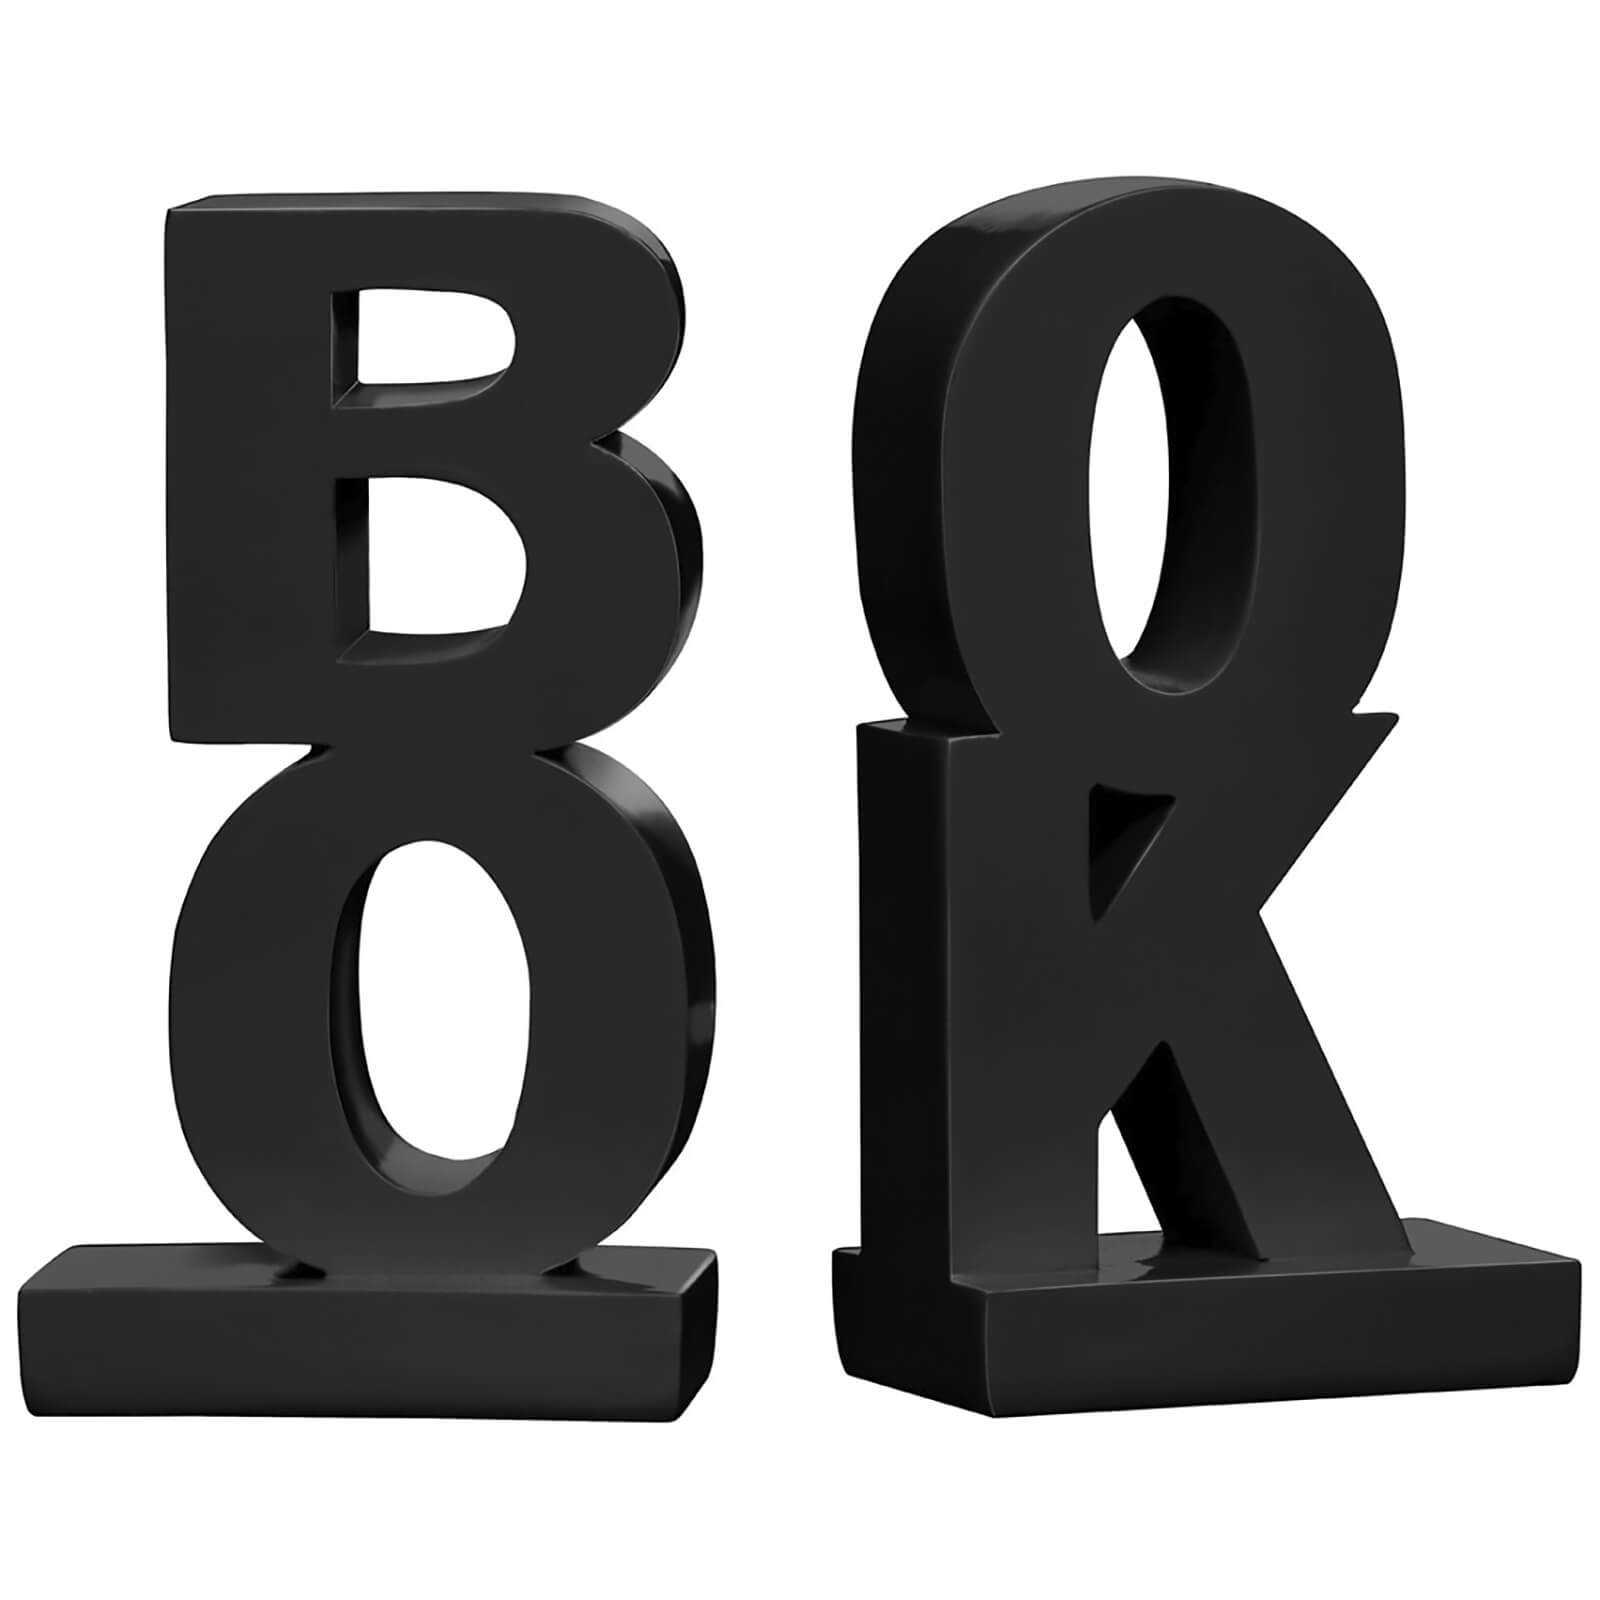 BOOK High Gloss Bookends (Set of 2) - Black